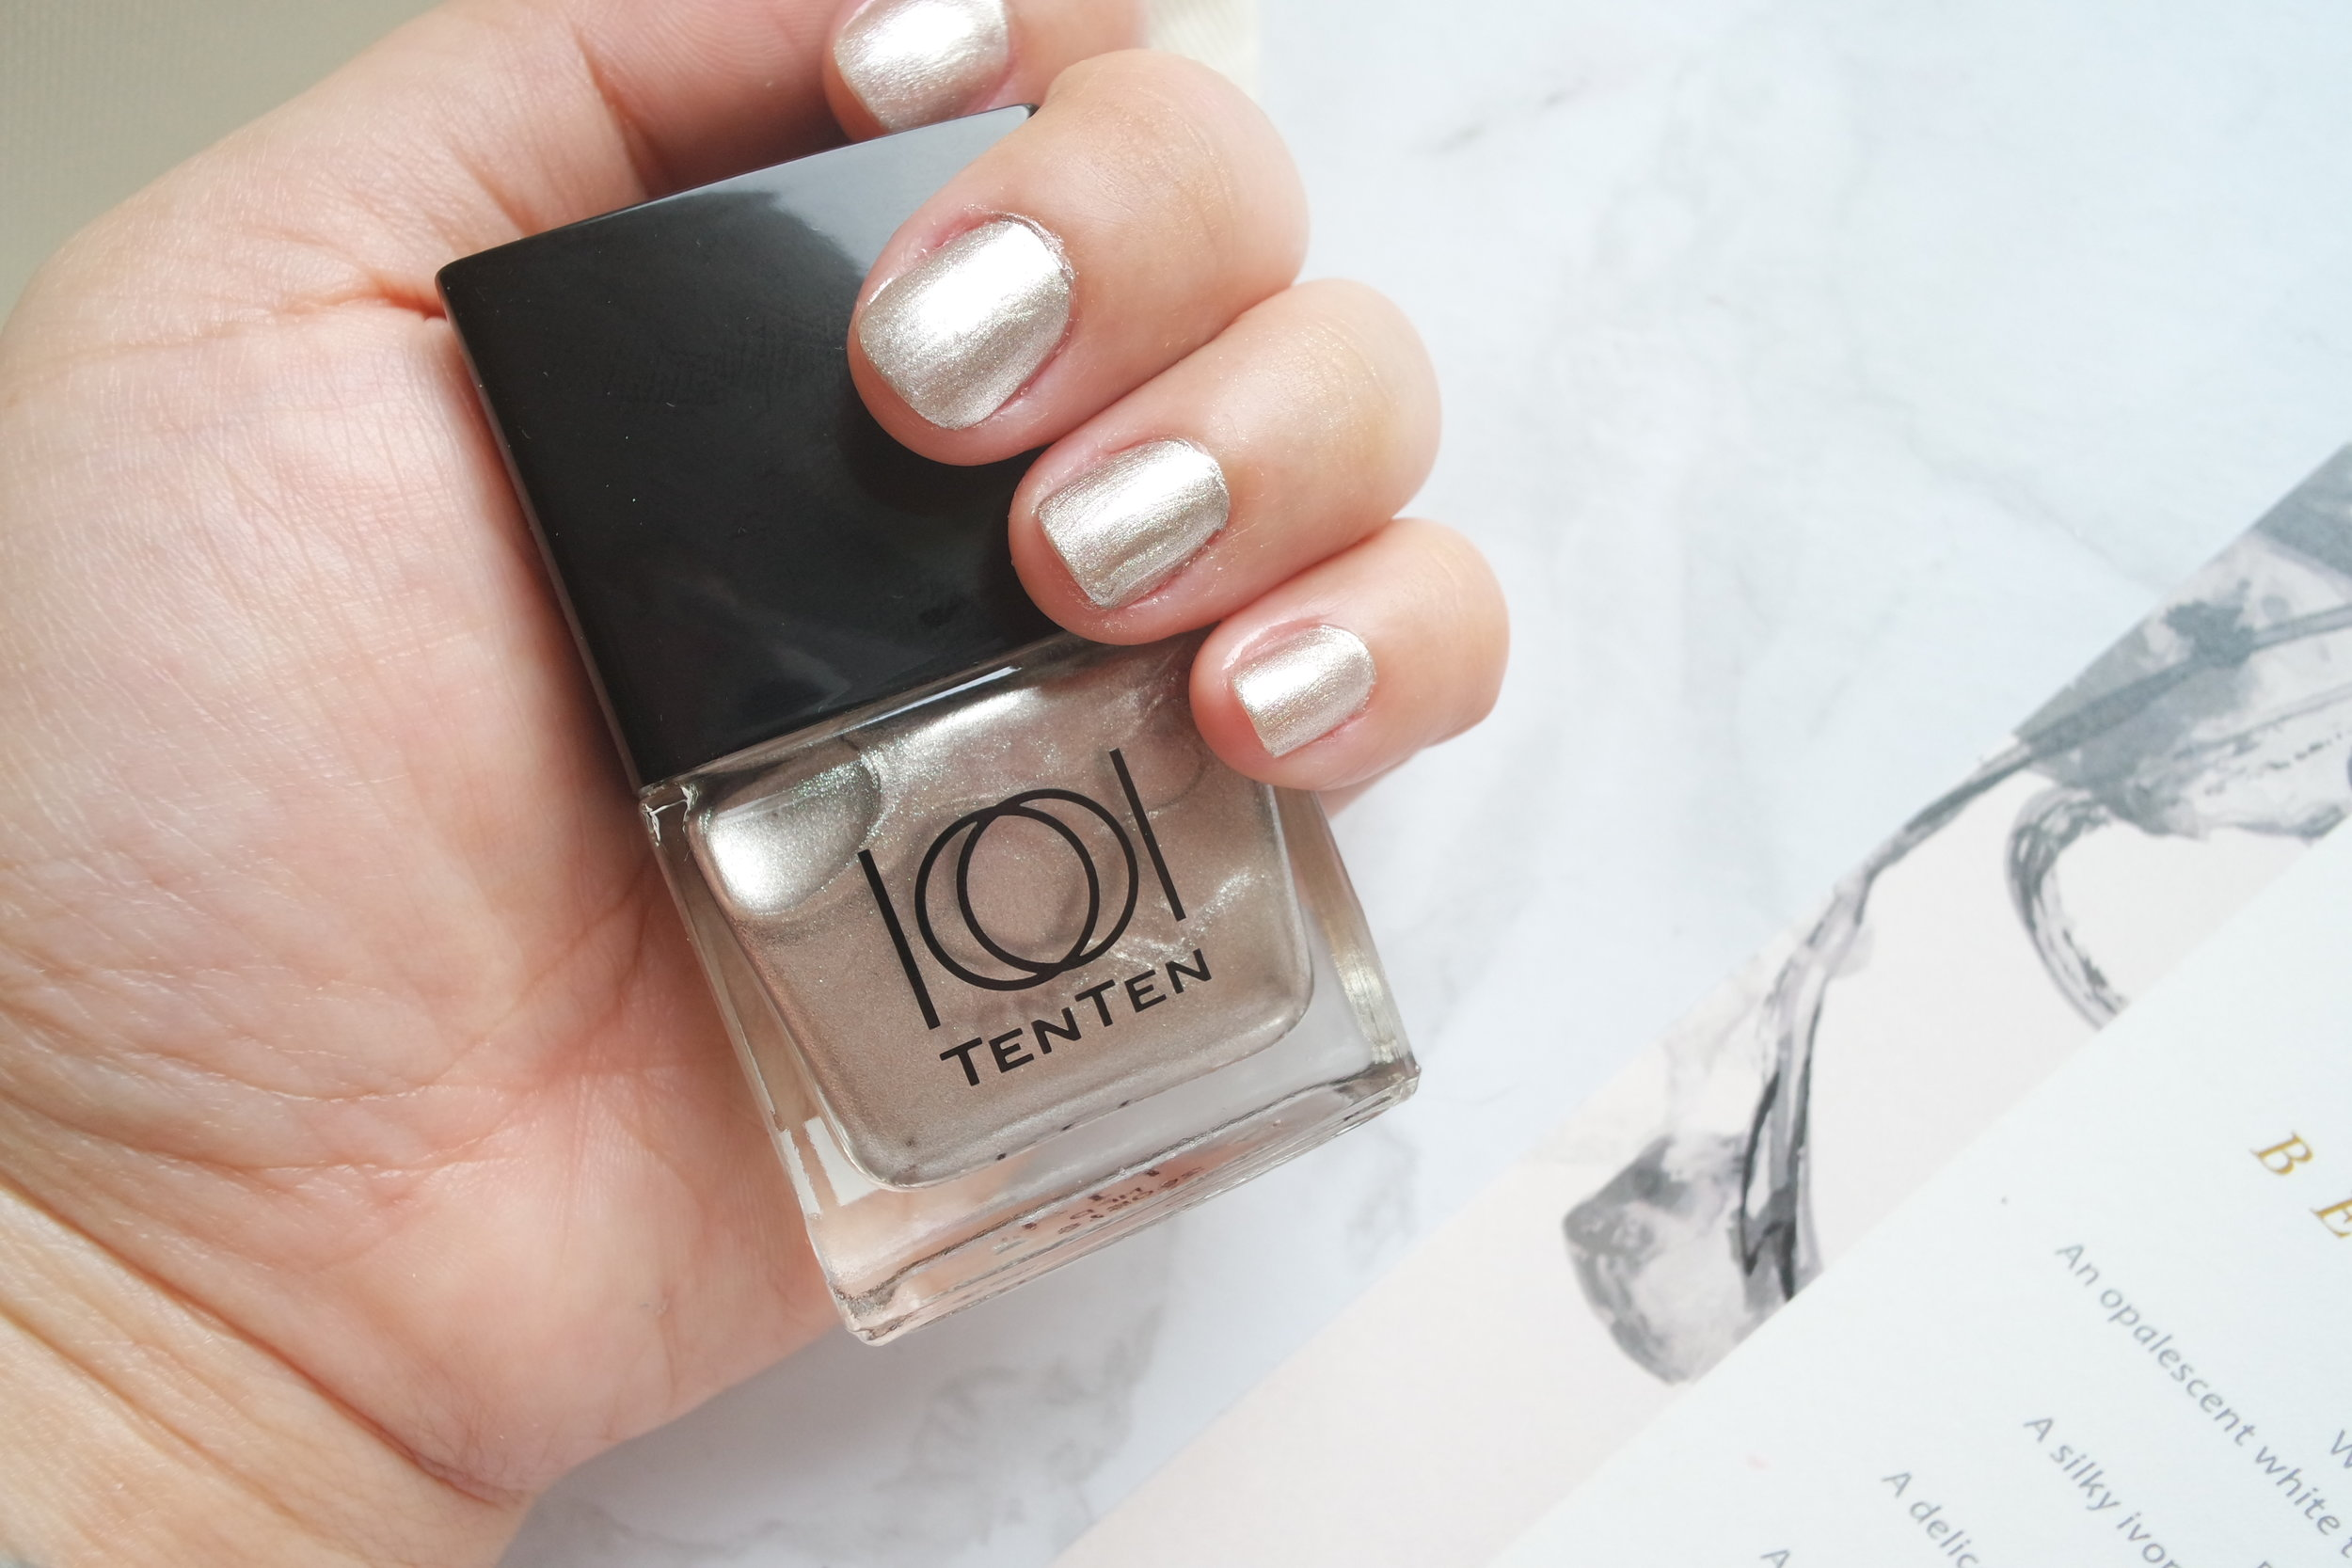 Platinum in (from top): three coats, two coats, one coat